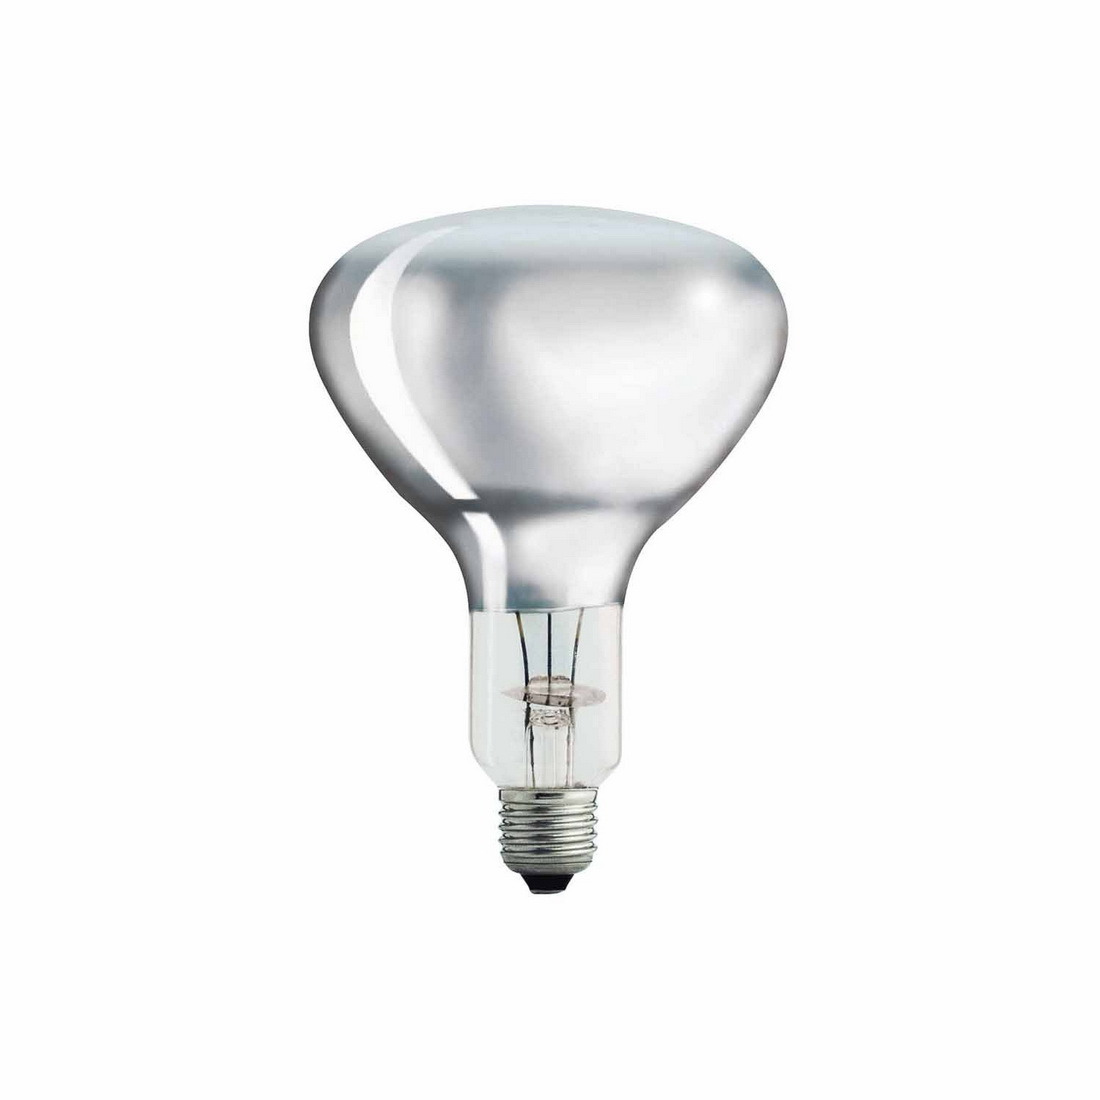 R125 275W 240V E27 Infrared Industrial Heat Incandescent Clear